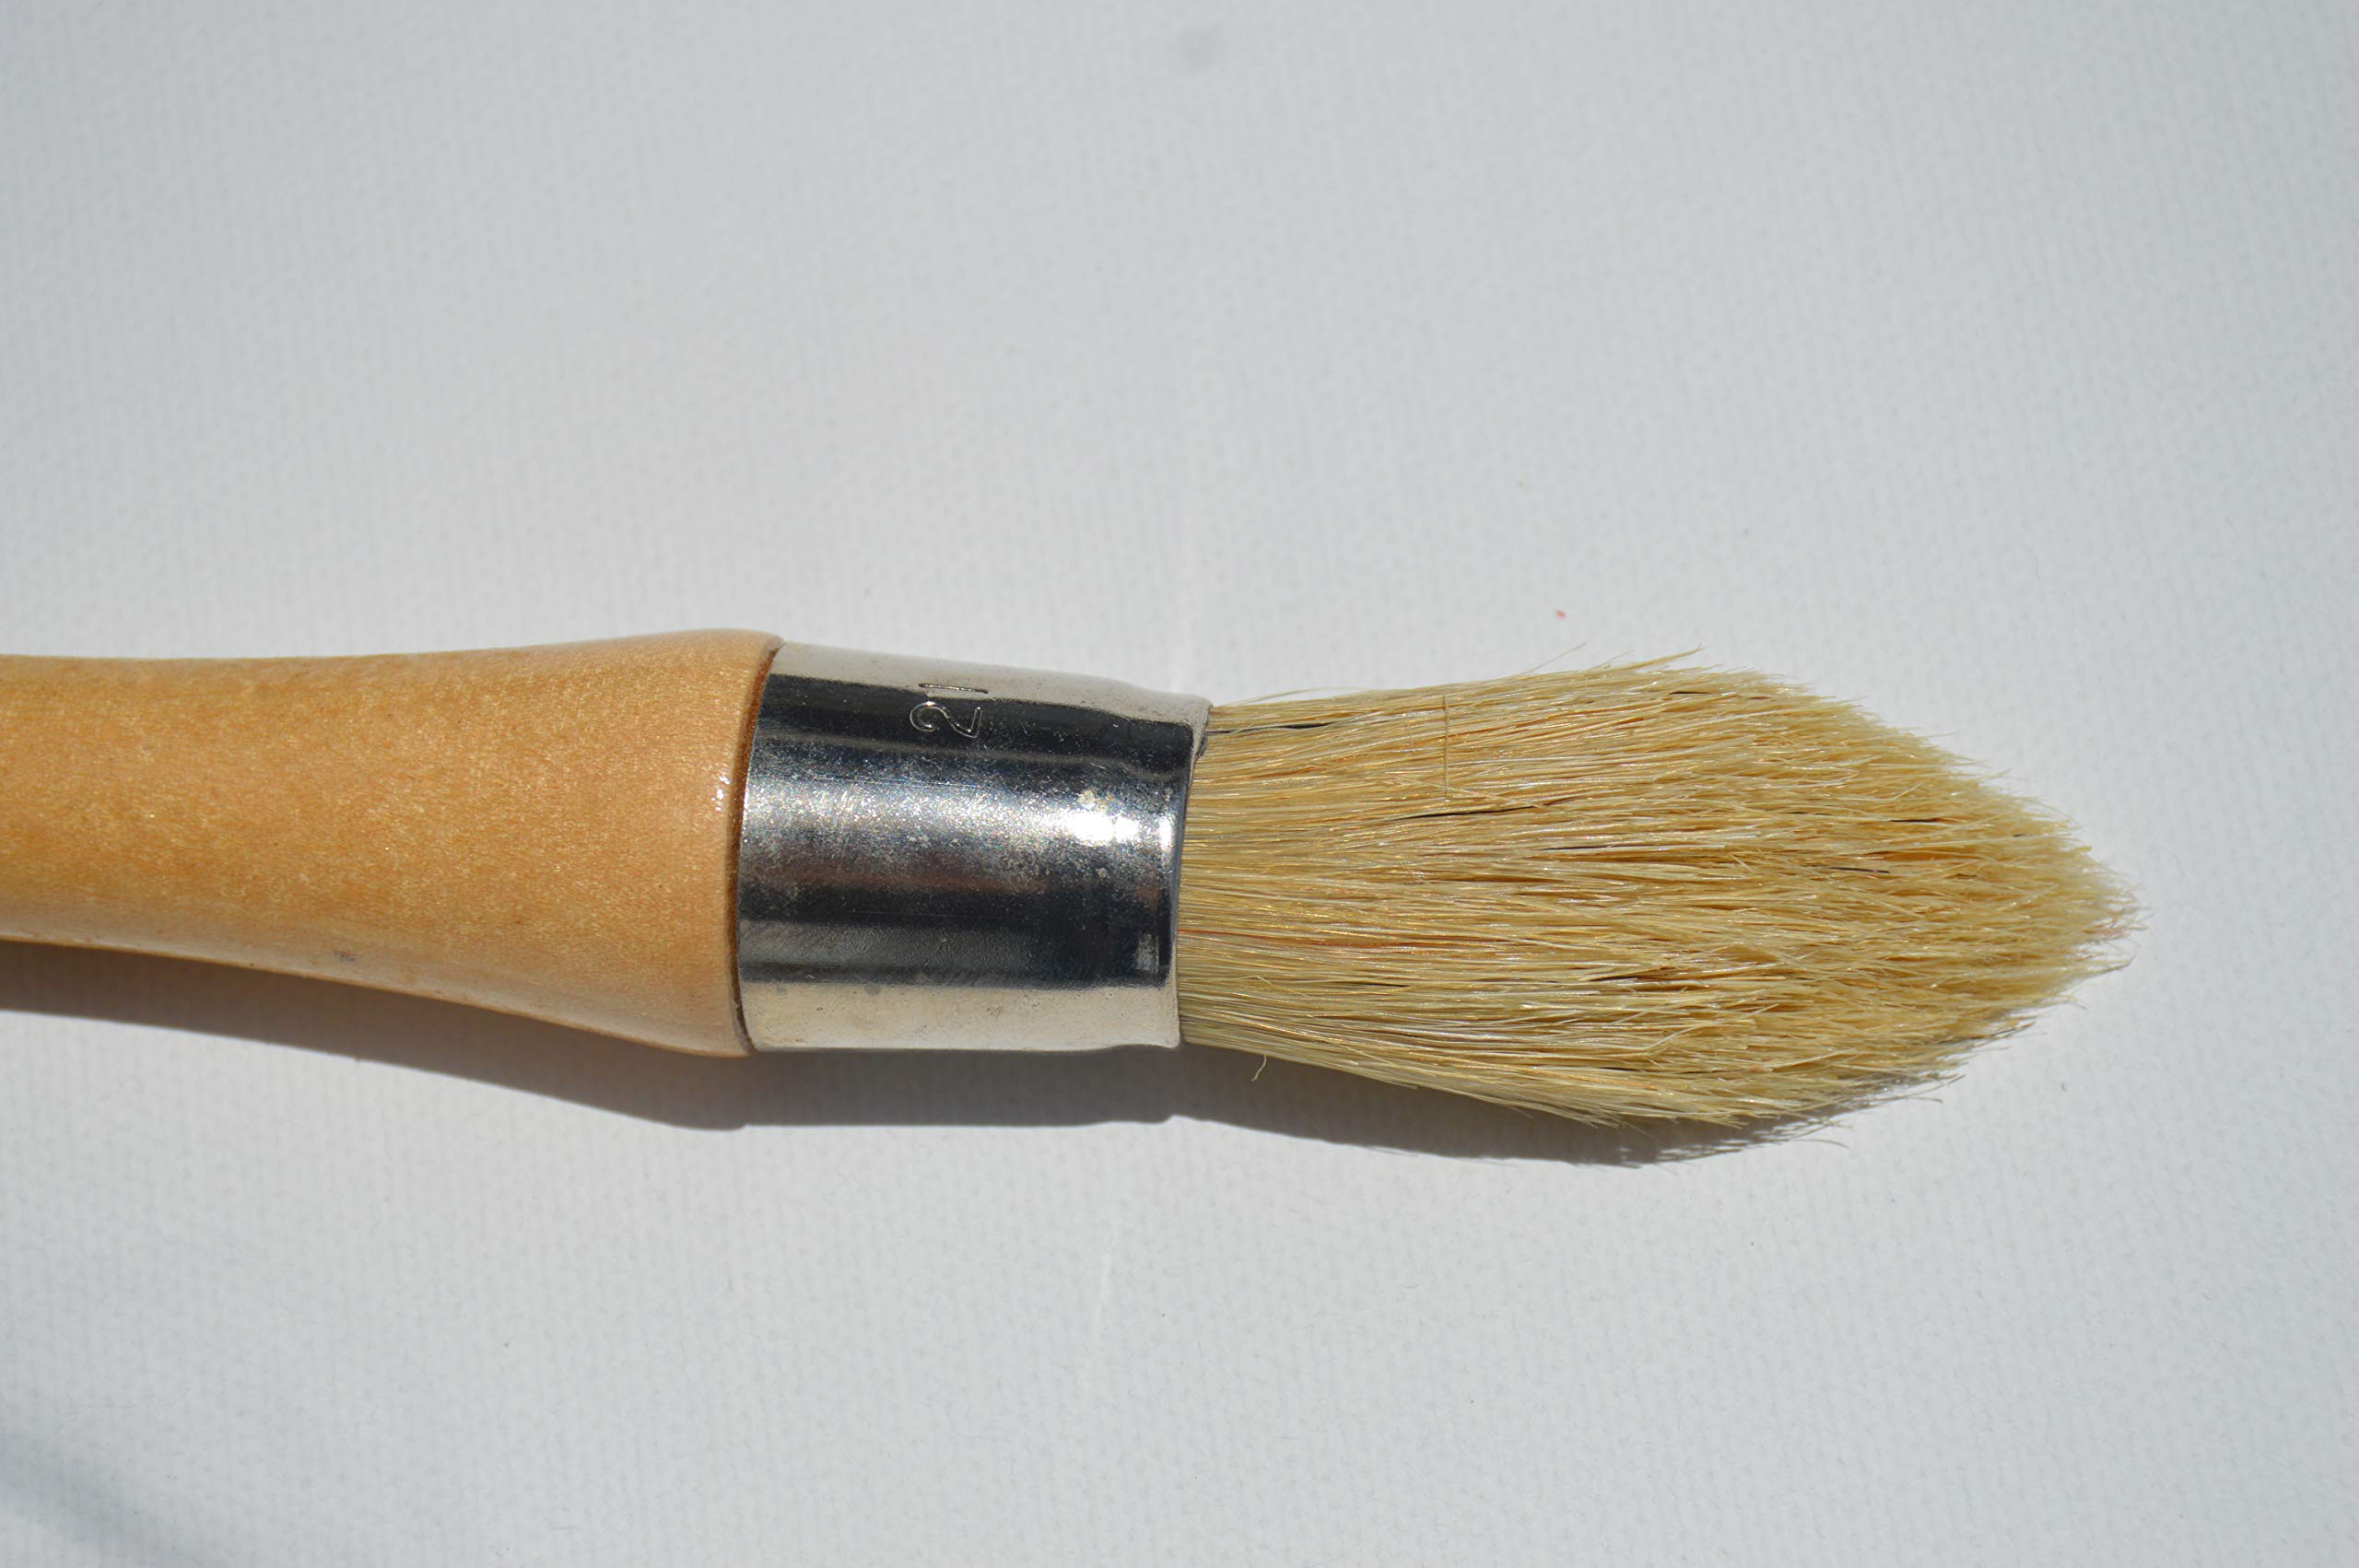 Chalkology Artisan Series - Round Pointed Chalk Wax & Paint Brush by Chalkology